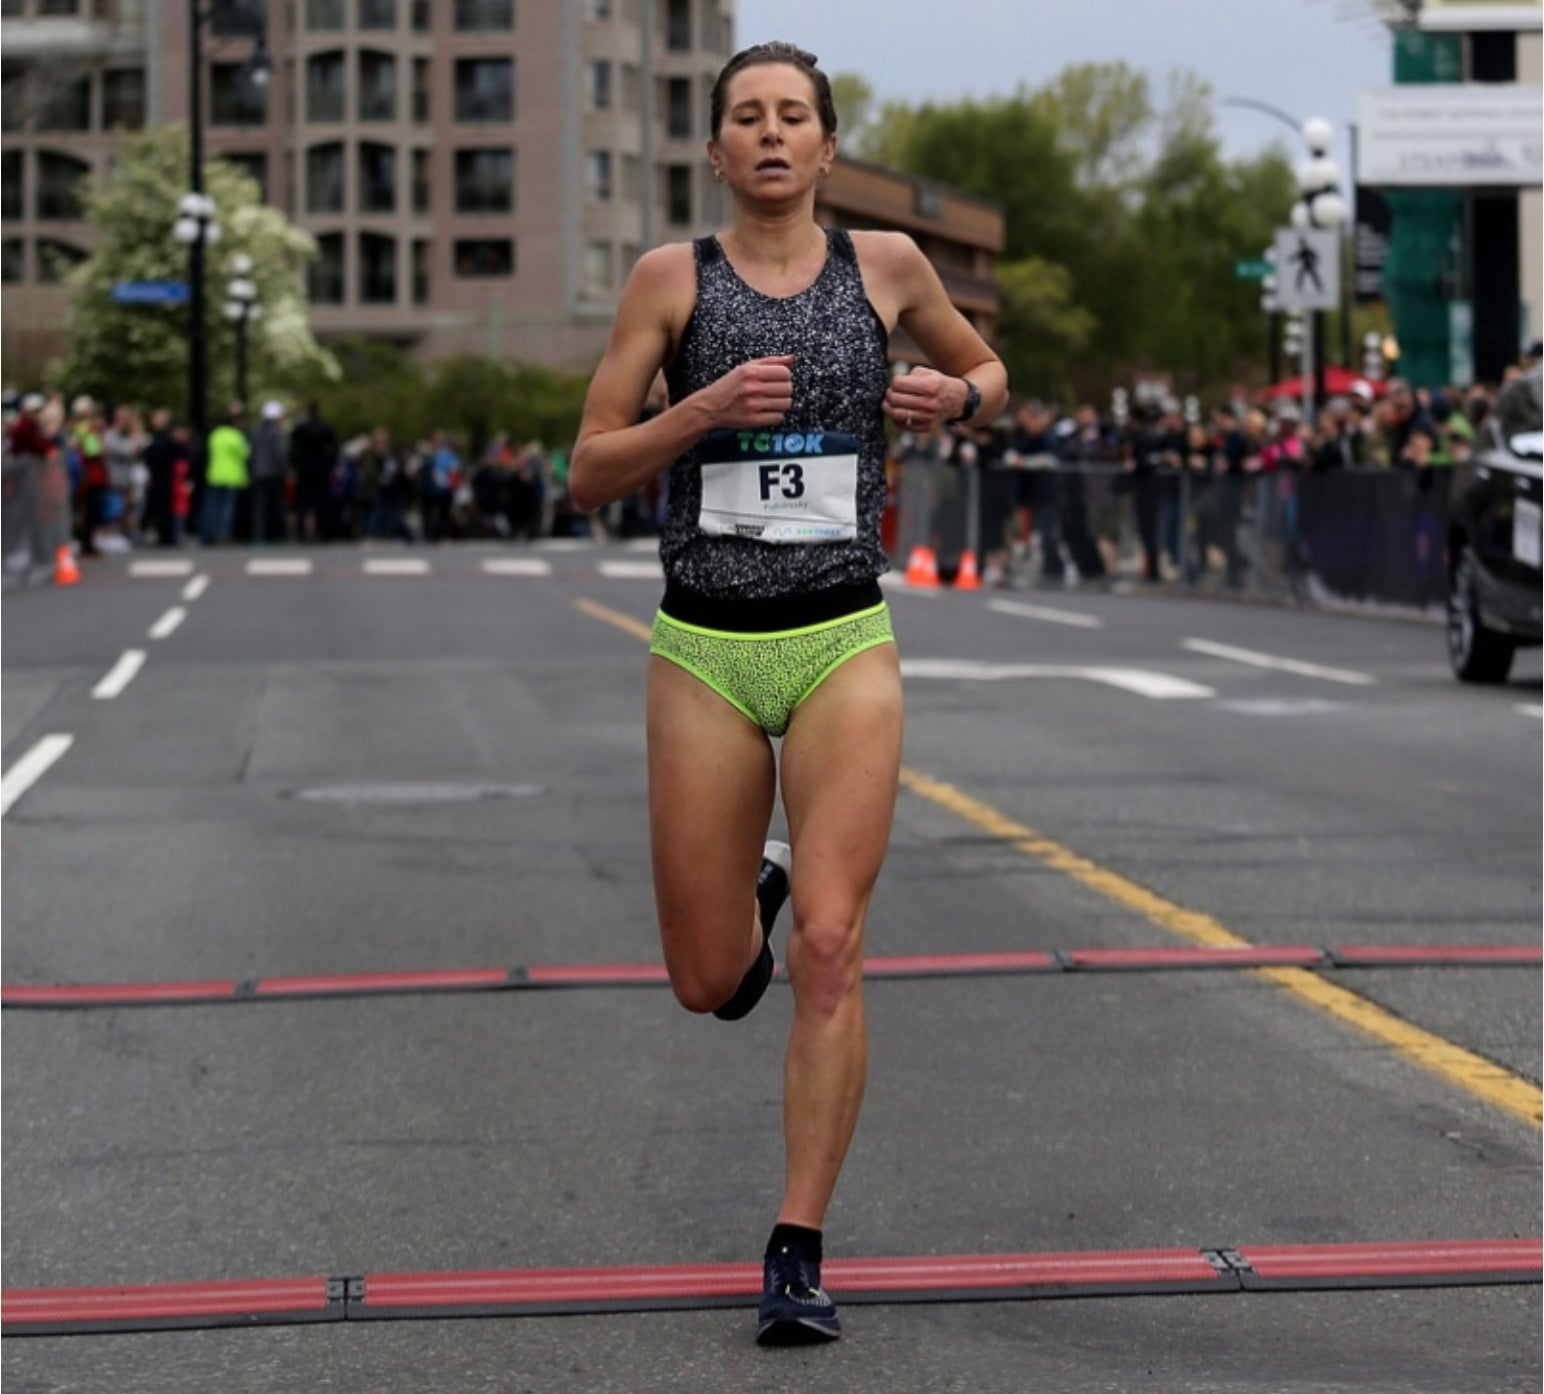 Dayna Pidhoresky on what it takes to run a 1:12 half-marathon